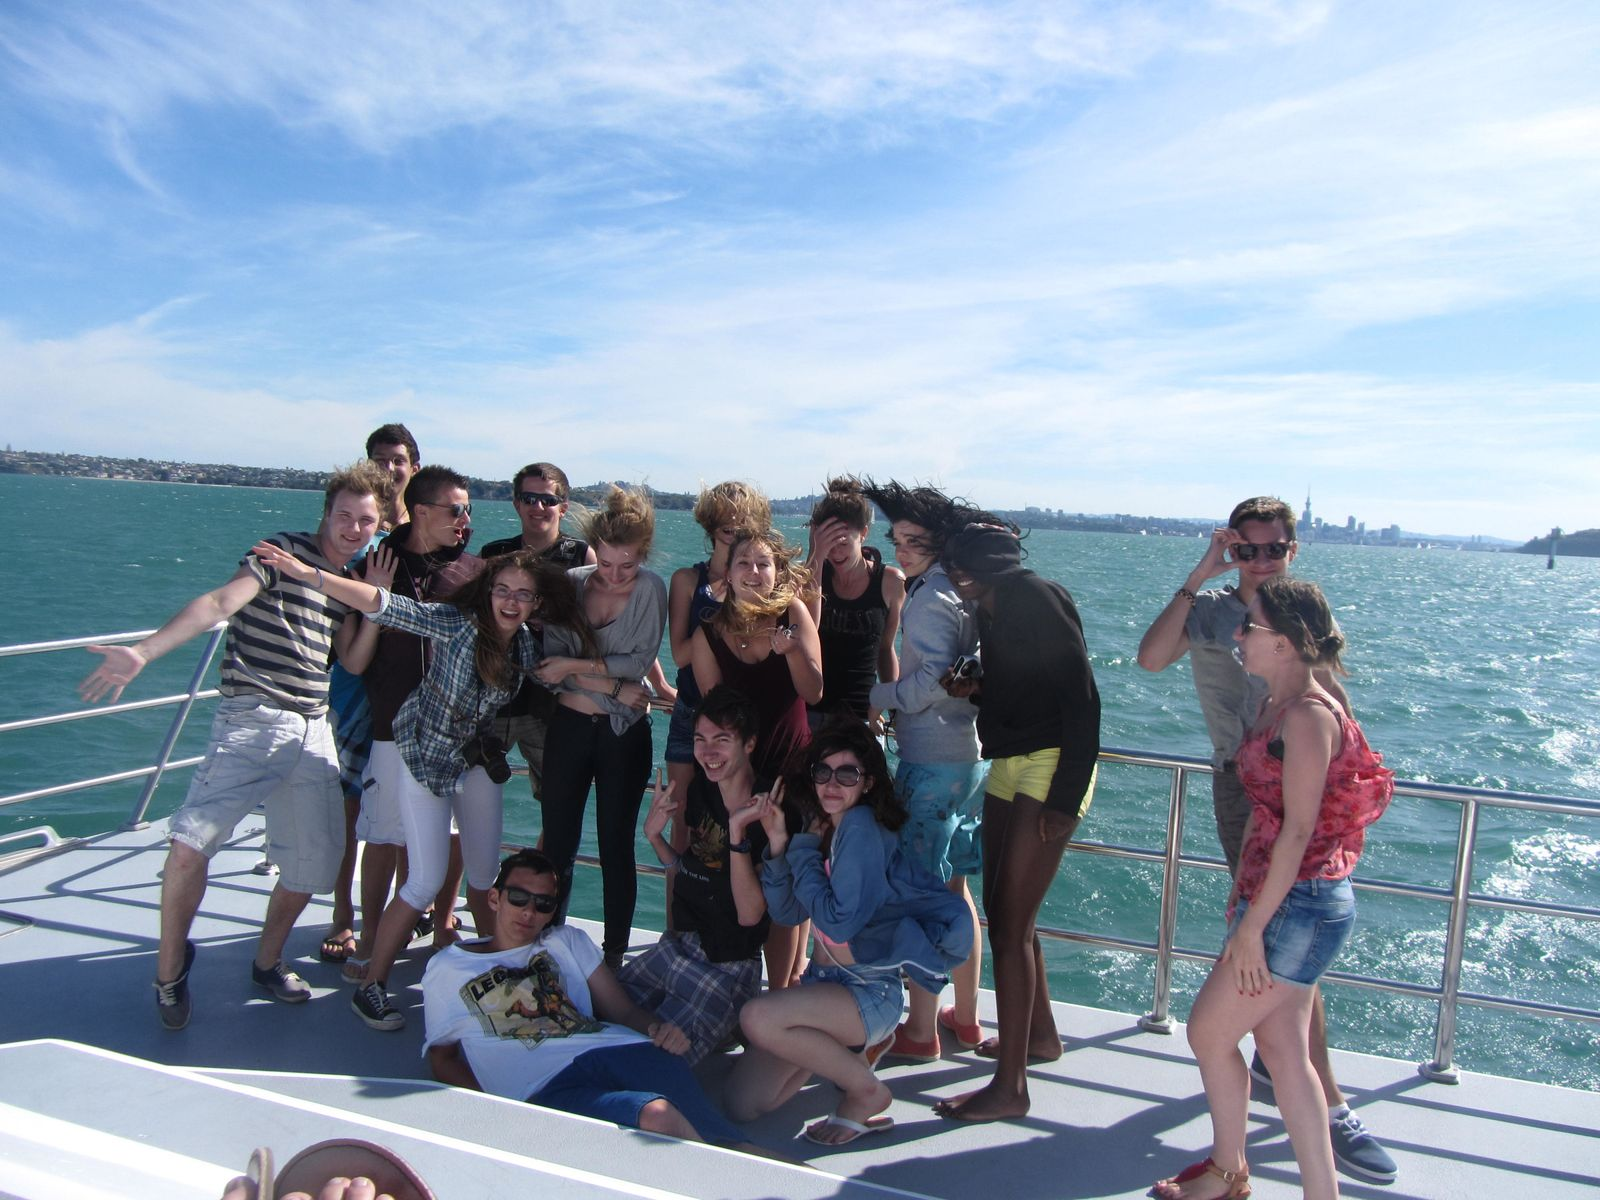 Day 11: Dolphins cruise